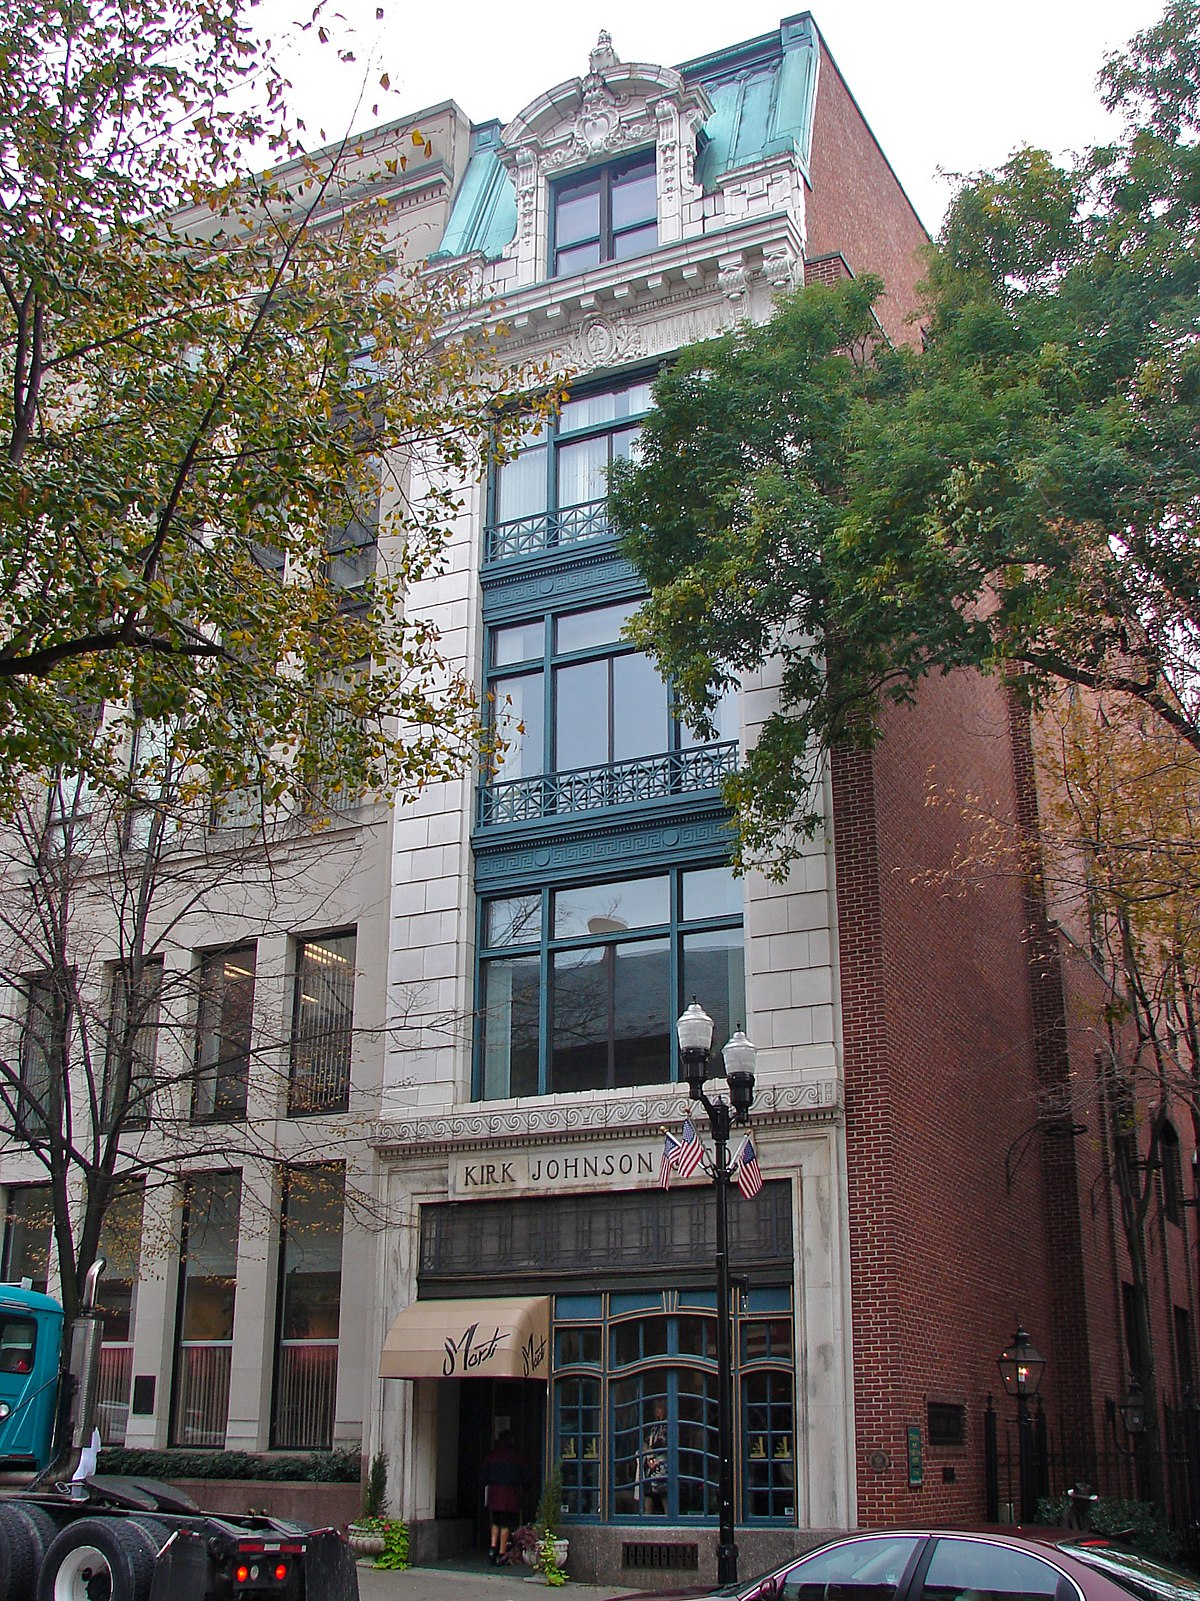 johnson johnson building an infrastructure Johnson & johnson on wednesday announced plans to launch jpod @ philadelphia with the university of pennsylvania specifically, j&j will collaborate with the university of pennsylvania on the project and locate its jpod within the pennovation center, a two-year-old technology incubator.